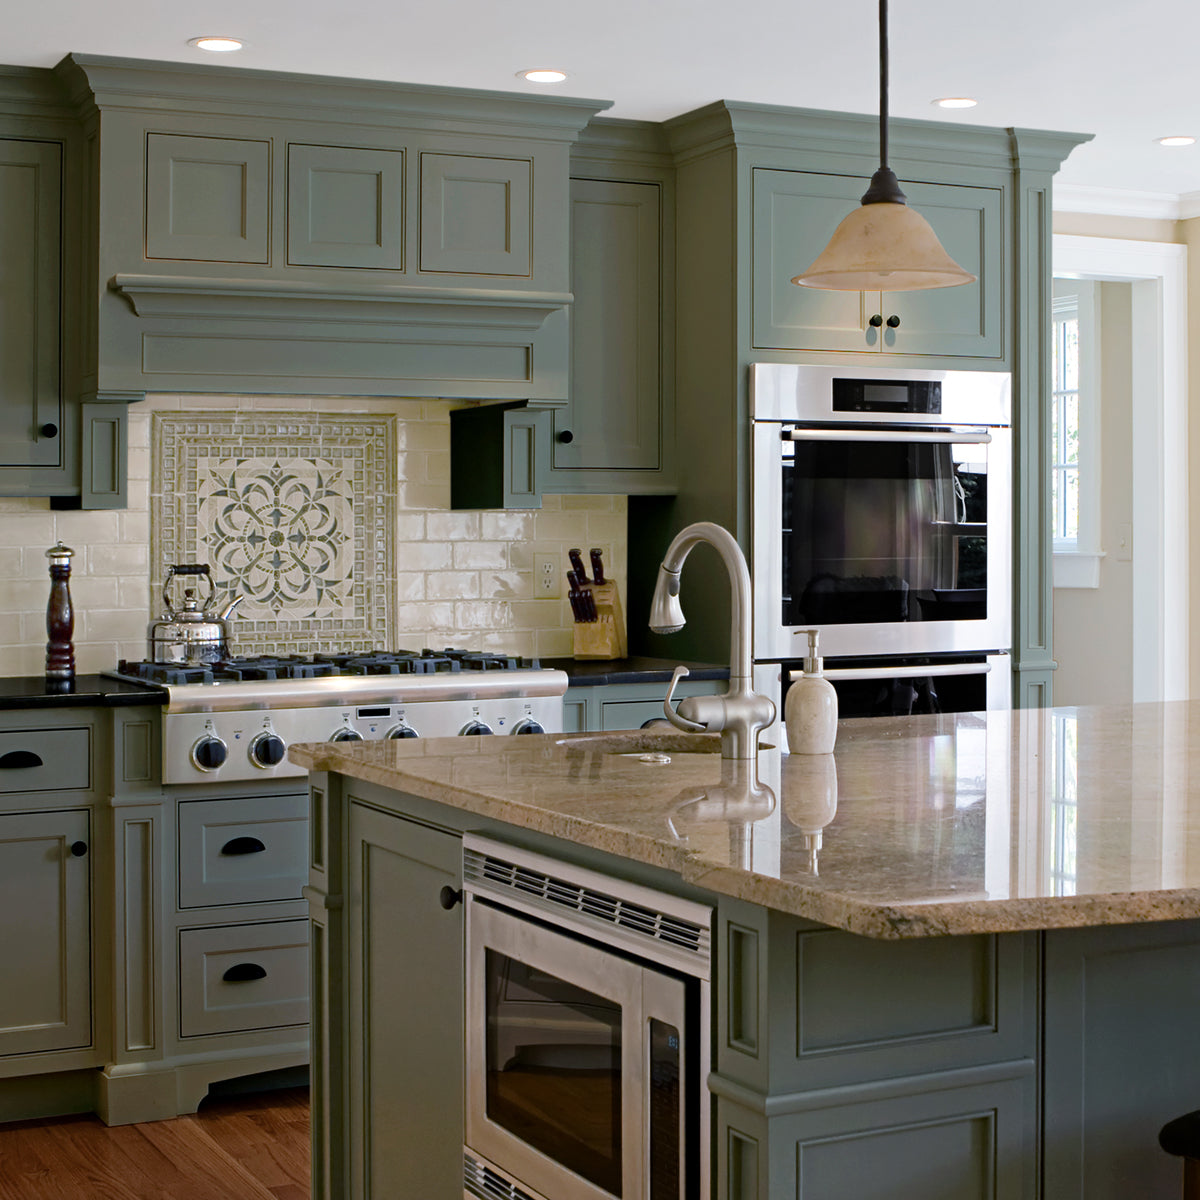 Nuvo Old Sage Cabinet Paint – Giani Inc.